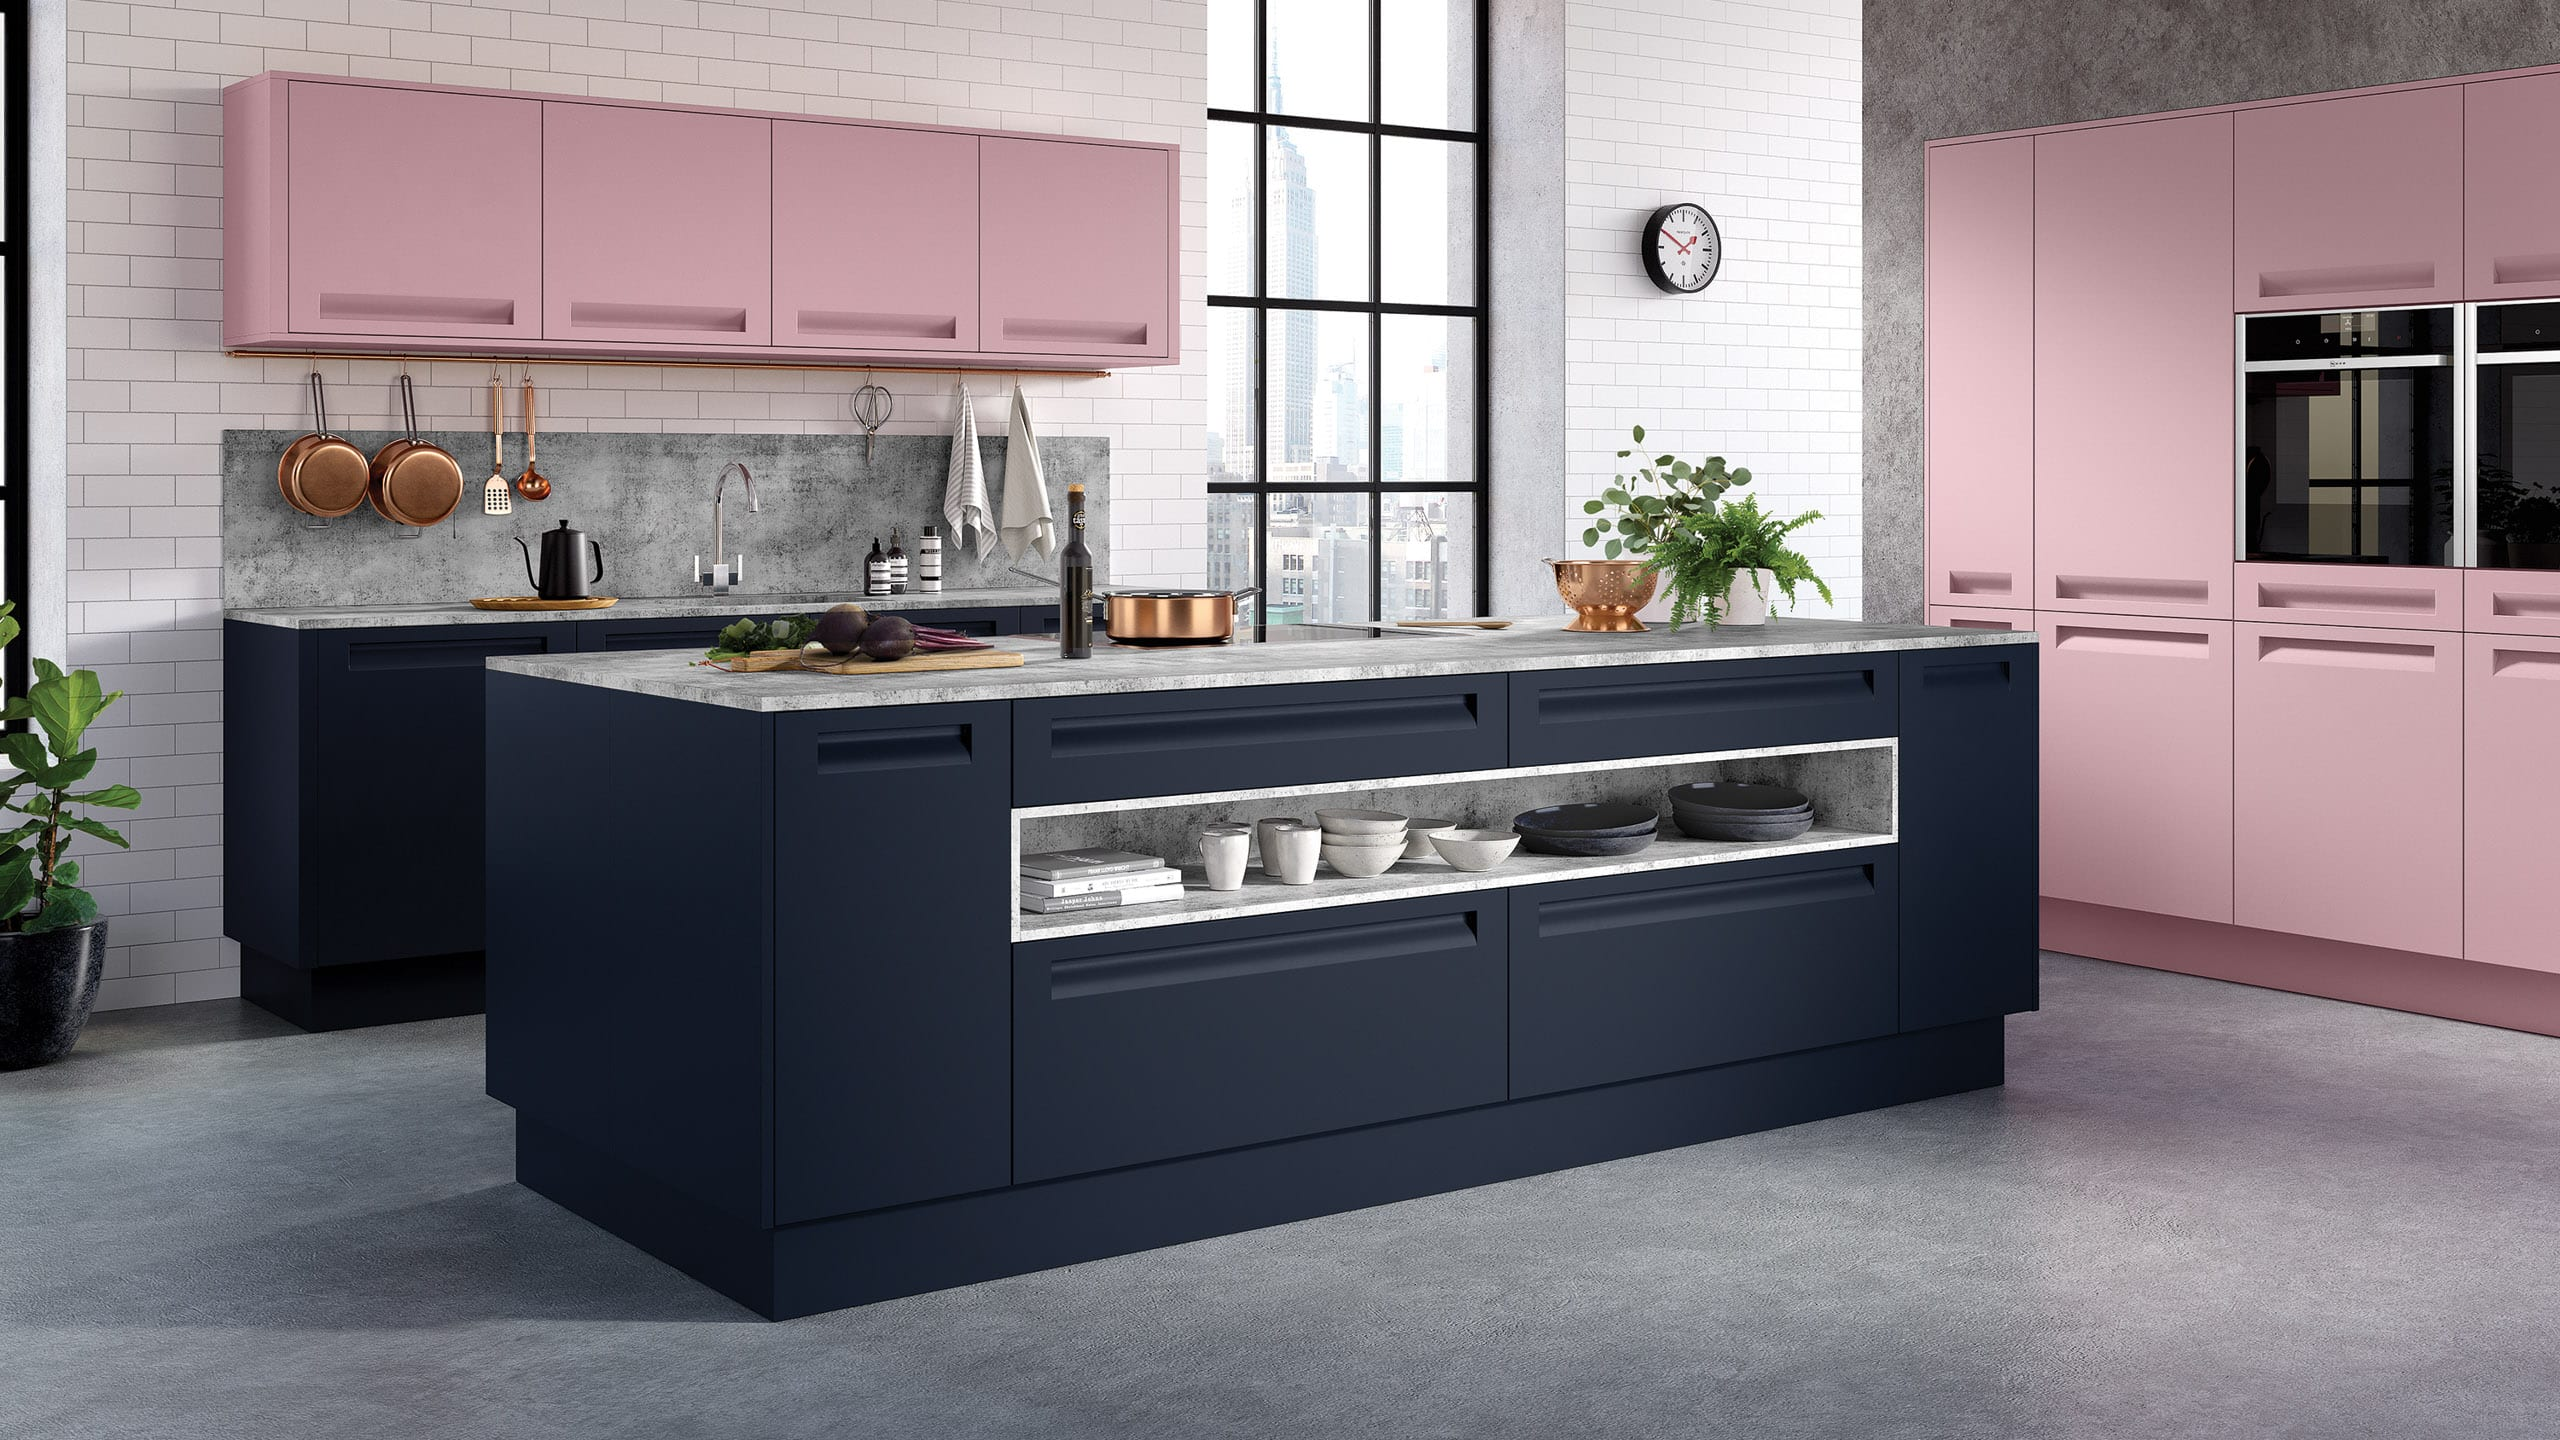 Autograph Painted Blush - indigo blue - kitchen